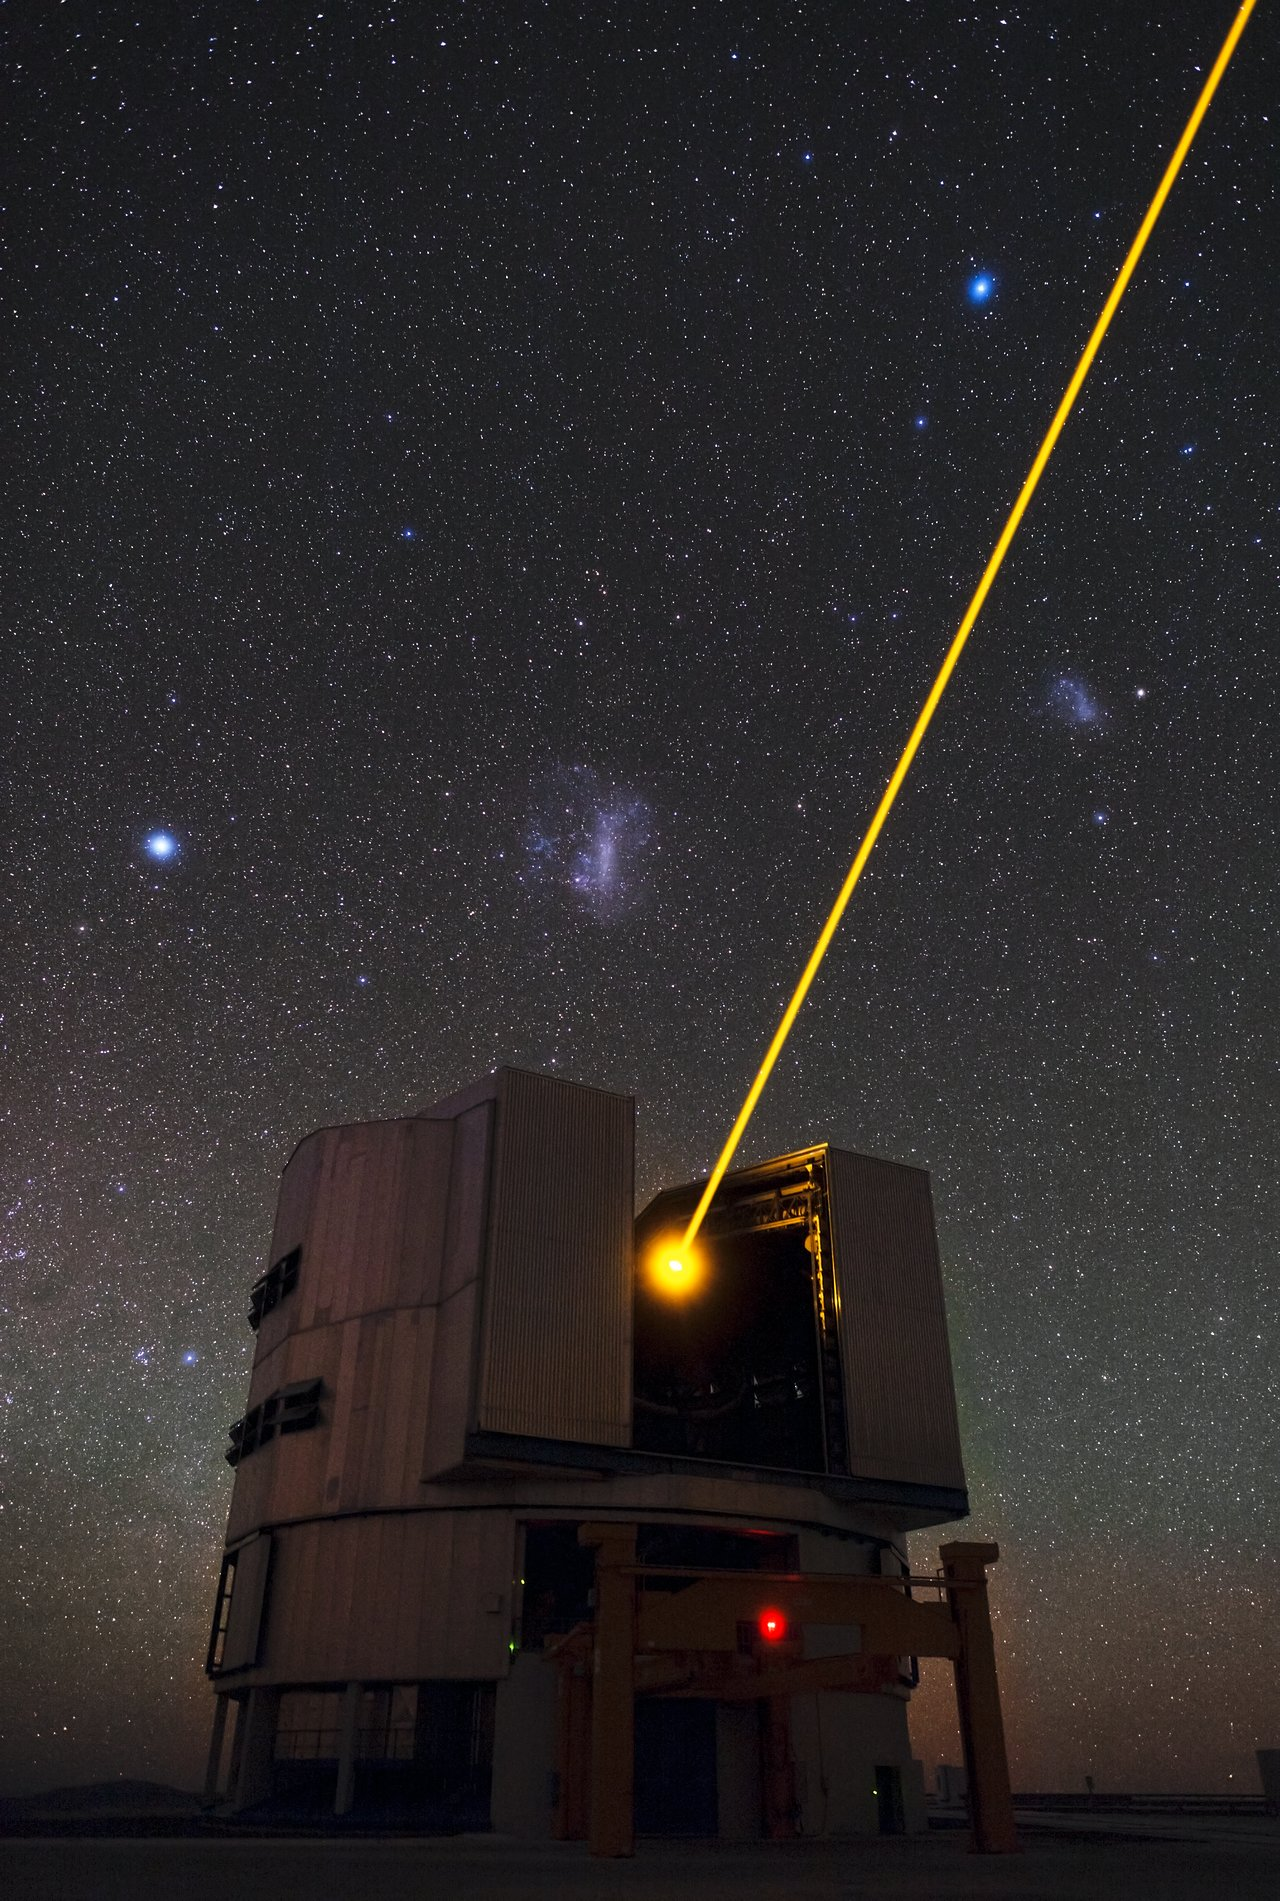 Mounted image 159: Yepun's Laser and the Magellanic Clouds